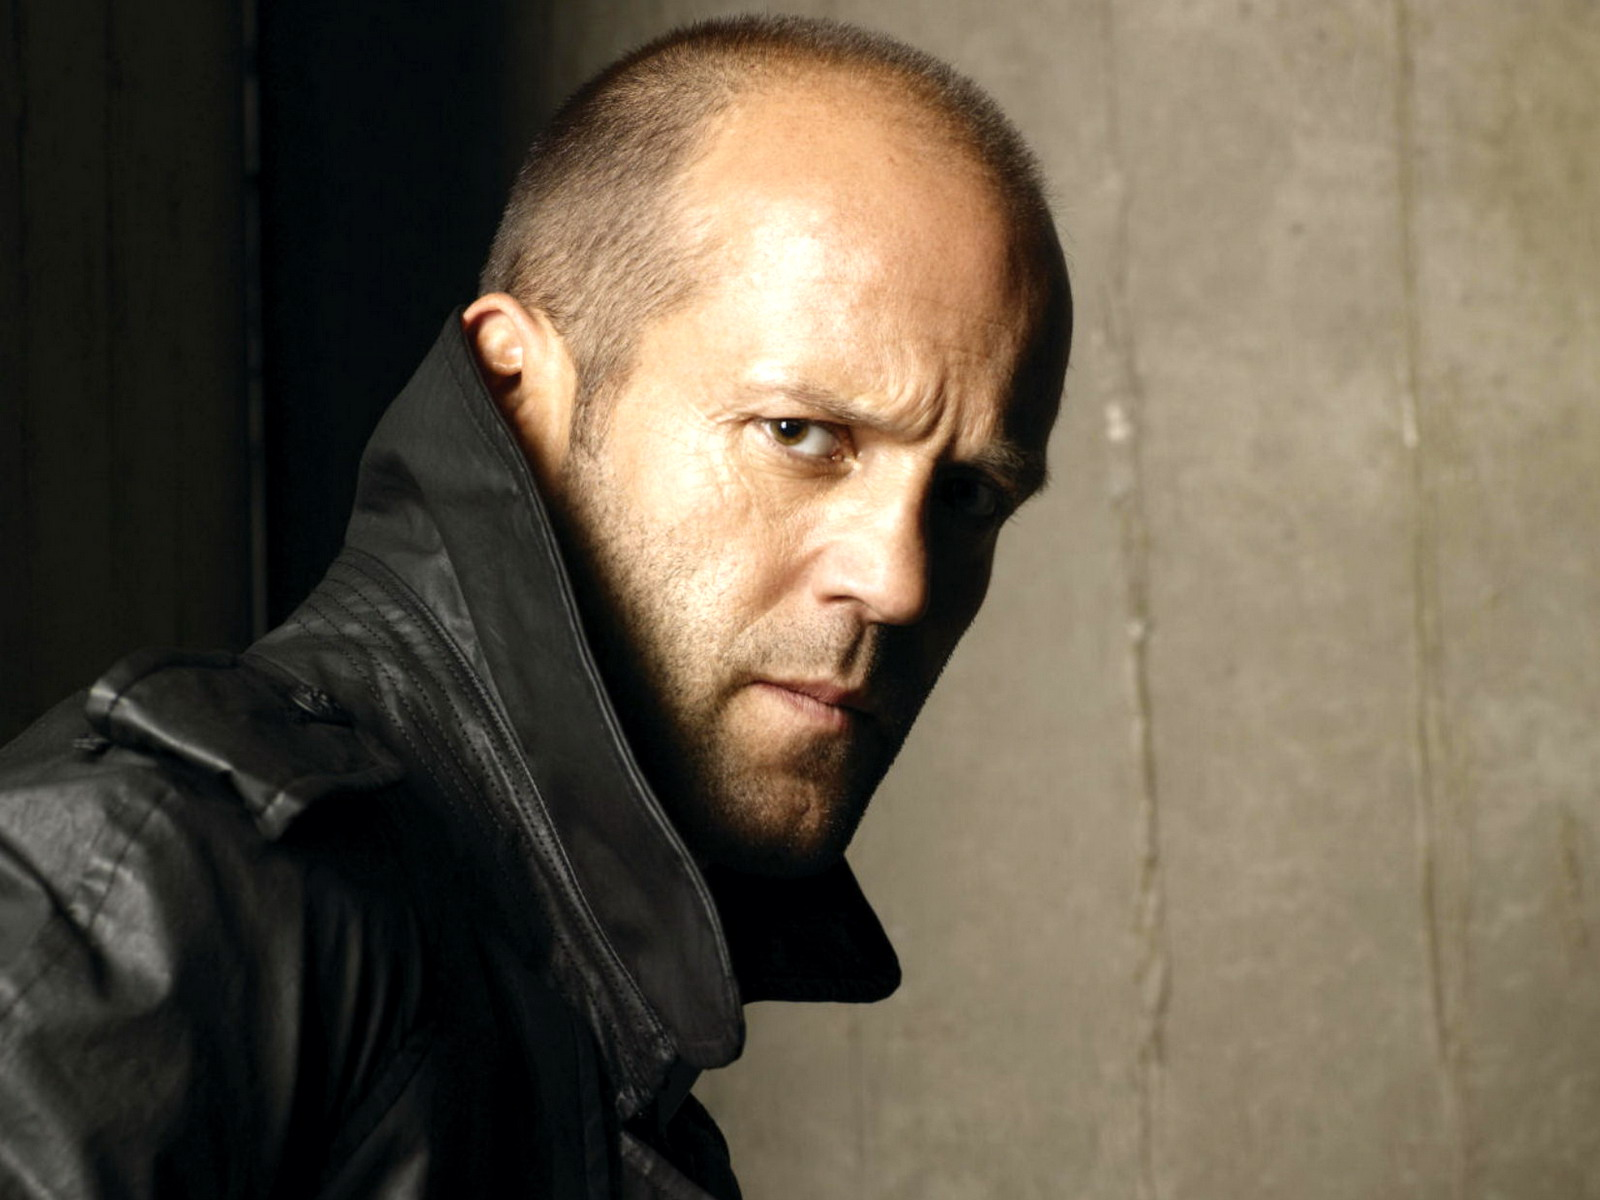 jason statham Top 10 Best Jason Statham Movies